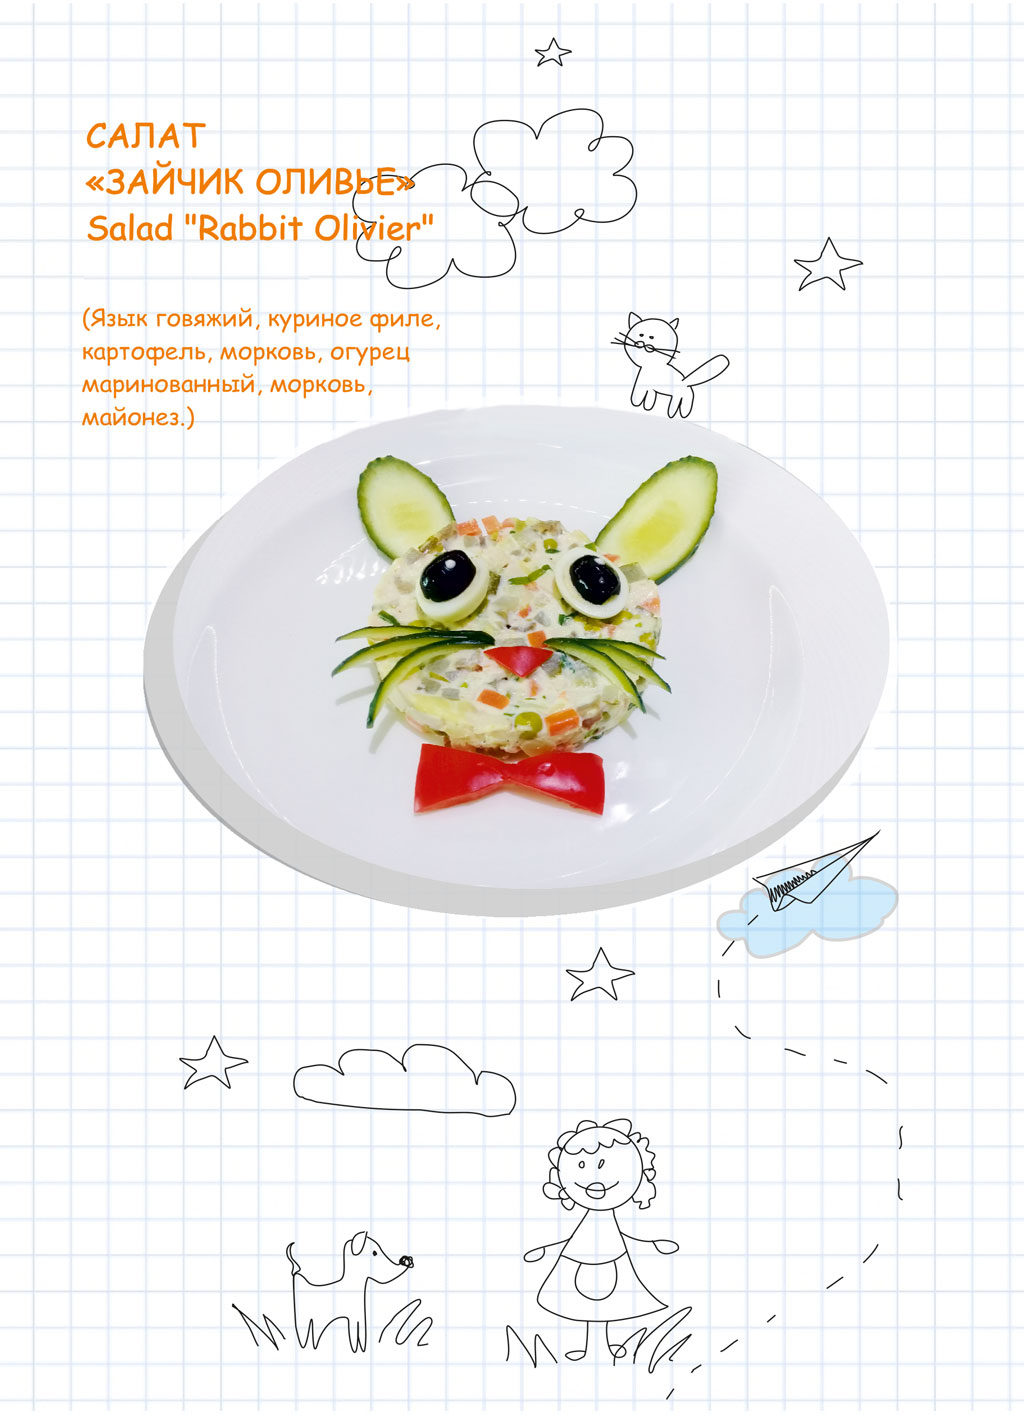 Салат «Зайчик Оливье» (salad Rabbit Olivier) в ресторане Аннам Брахма в Оренбурге